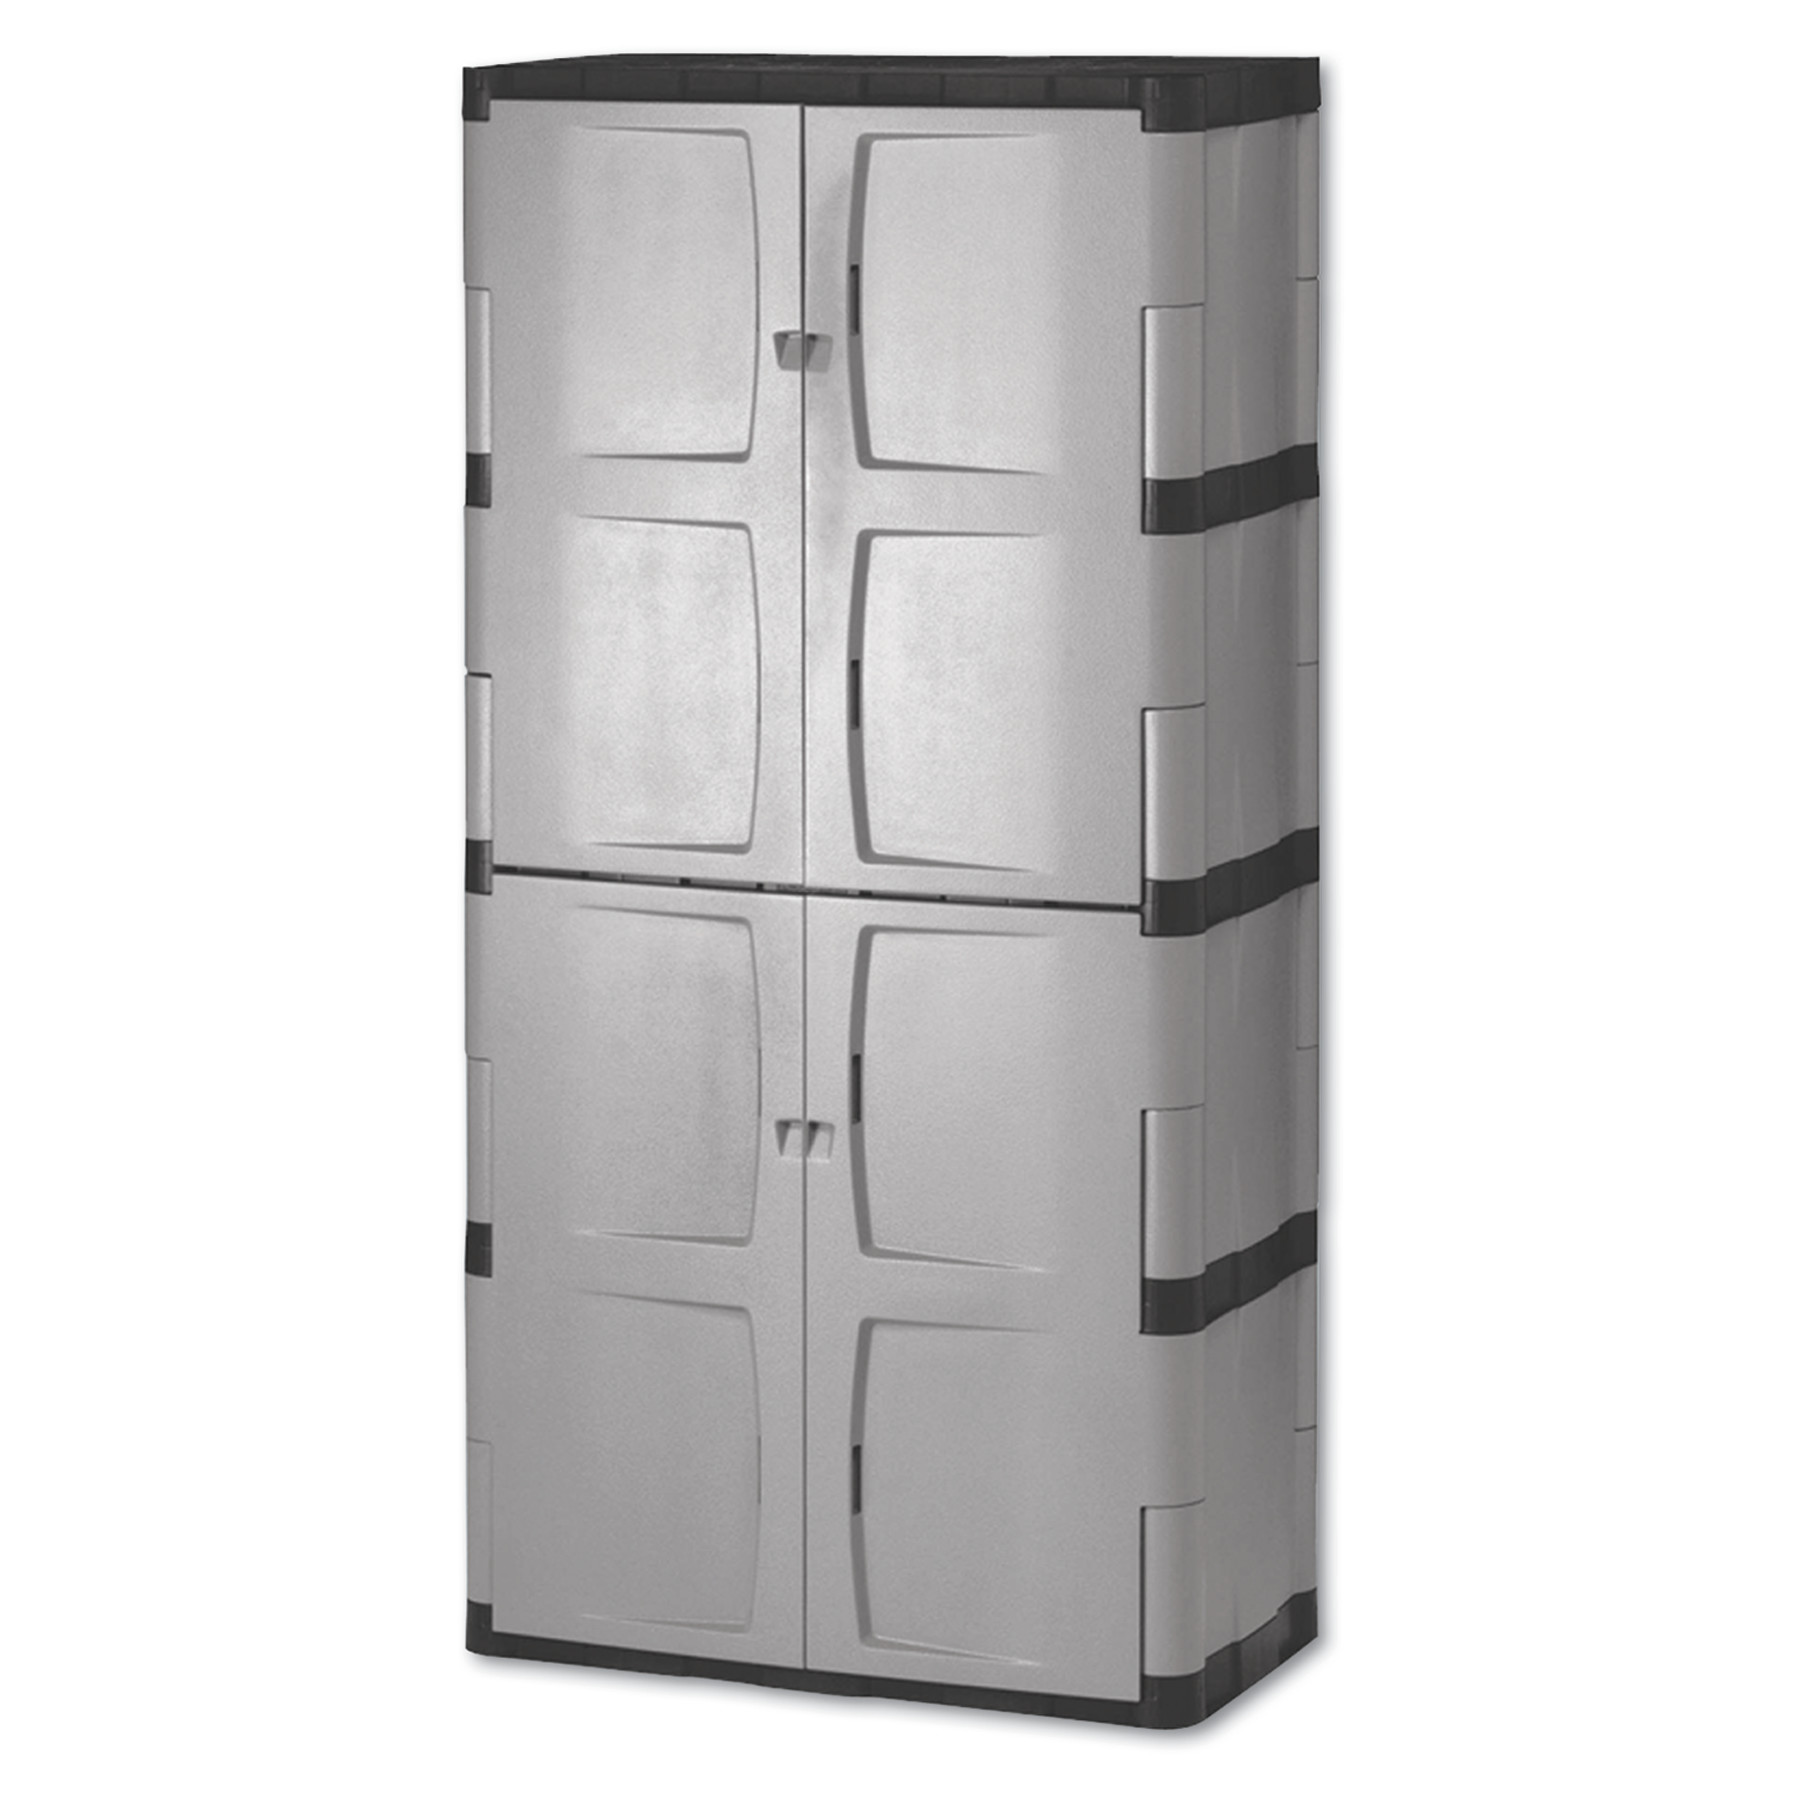 Rubbermaid Double-Door Storage Cabinet Base Top, 36w x 18d x 72h, Gray Black by Rubbermaid